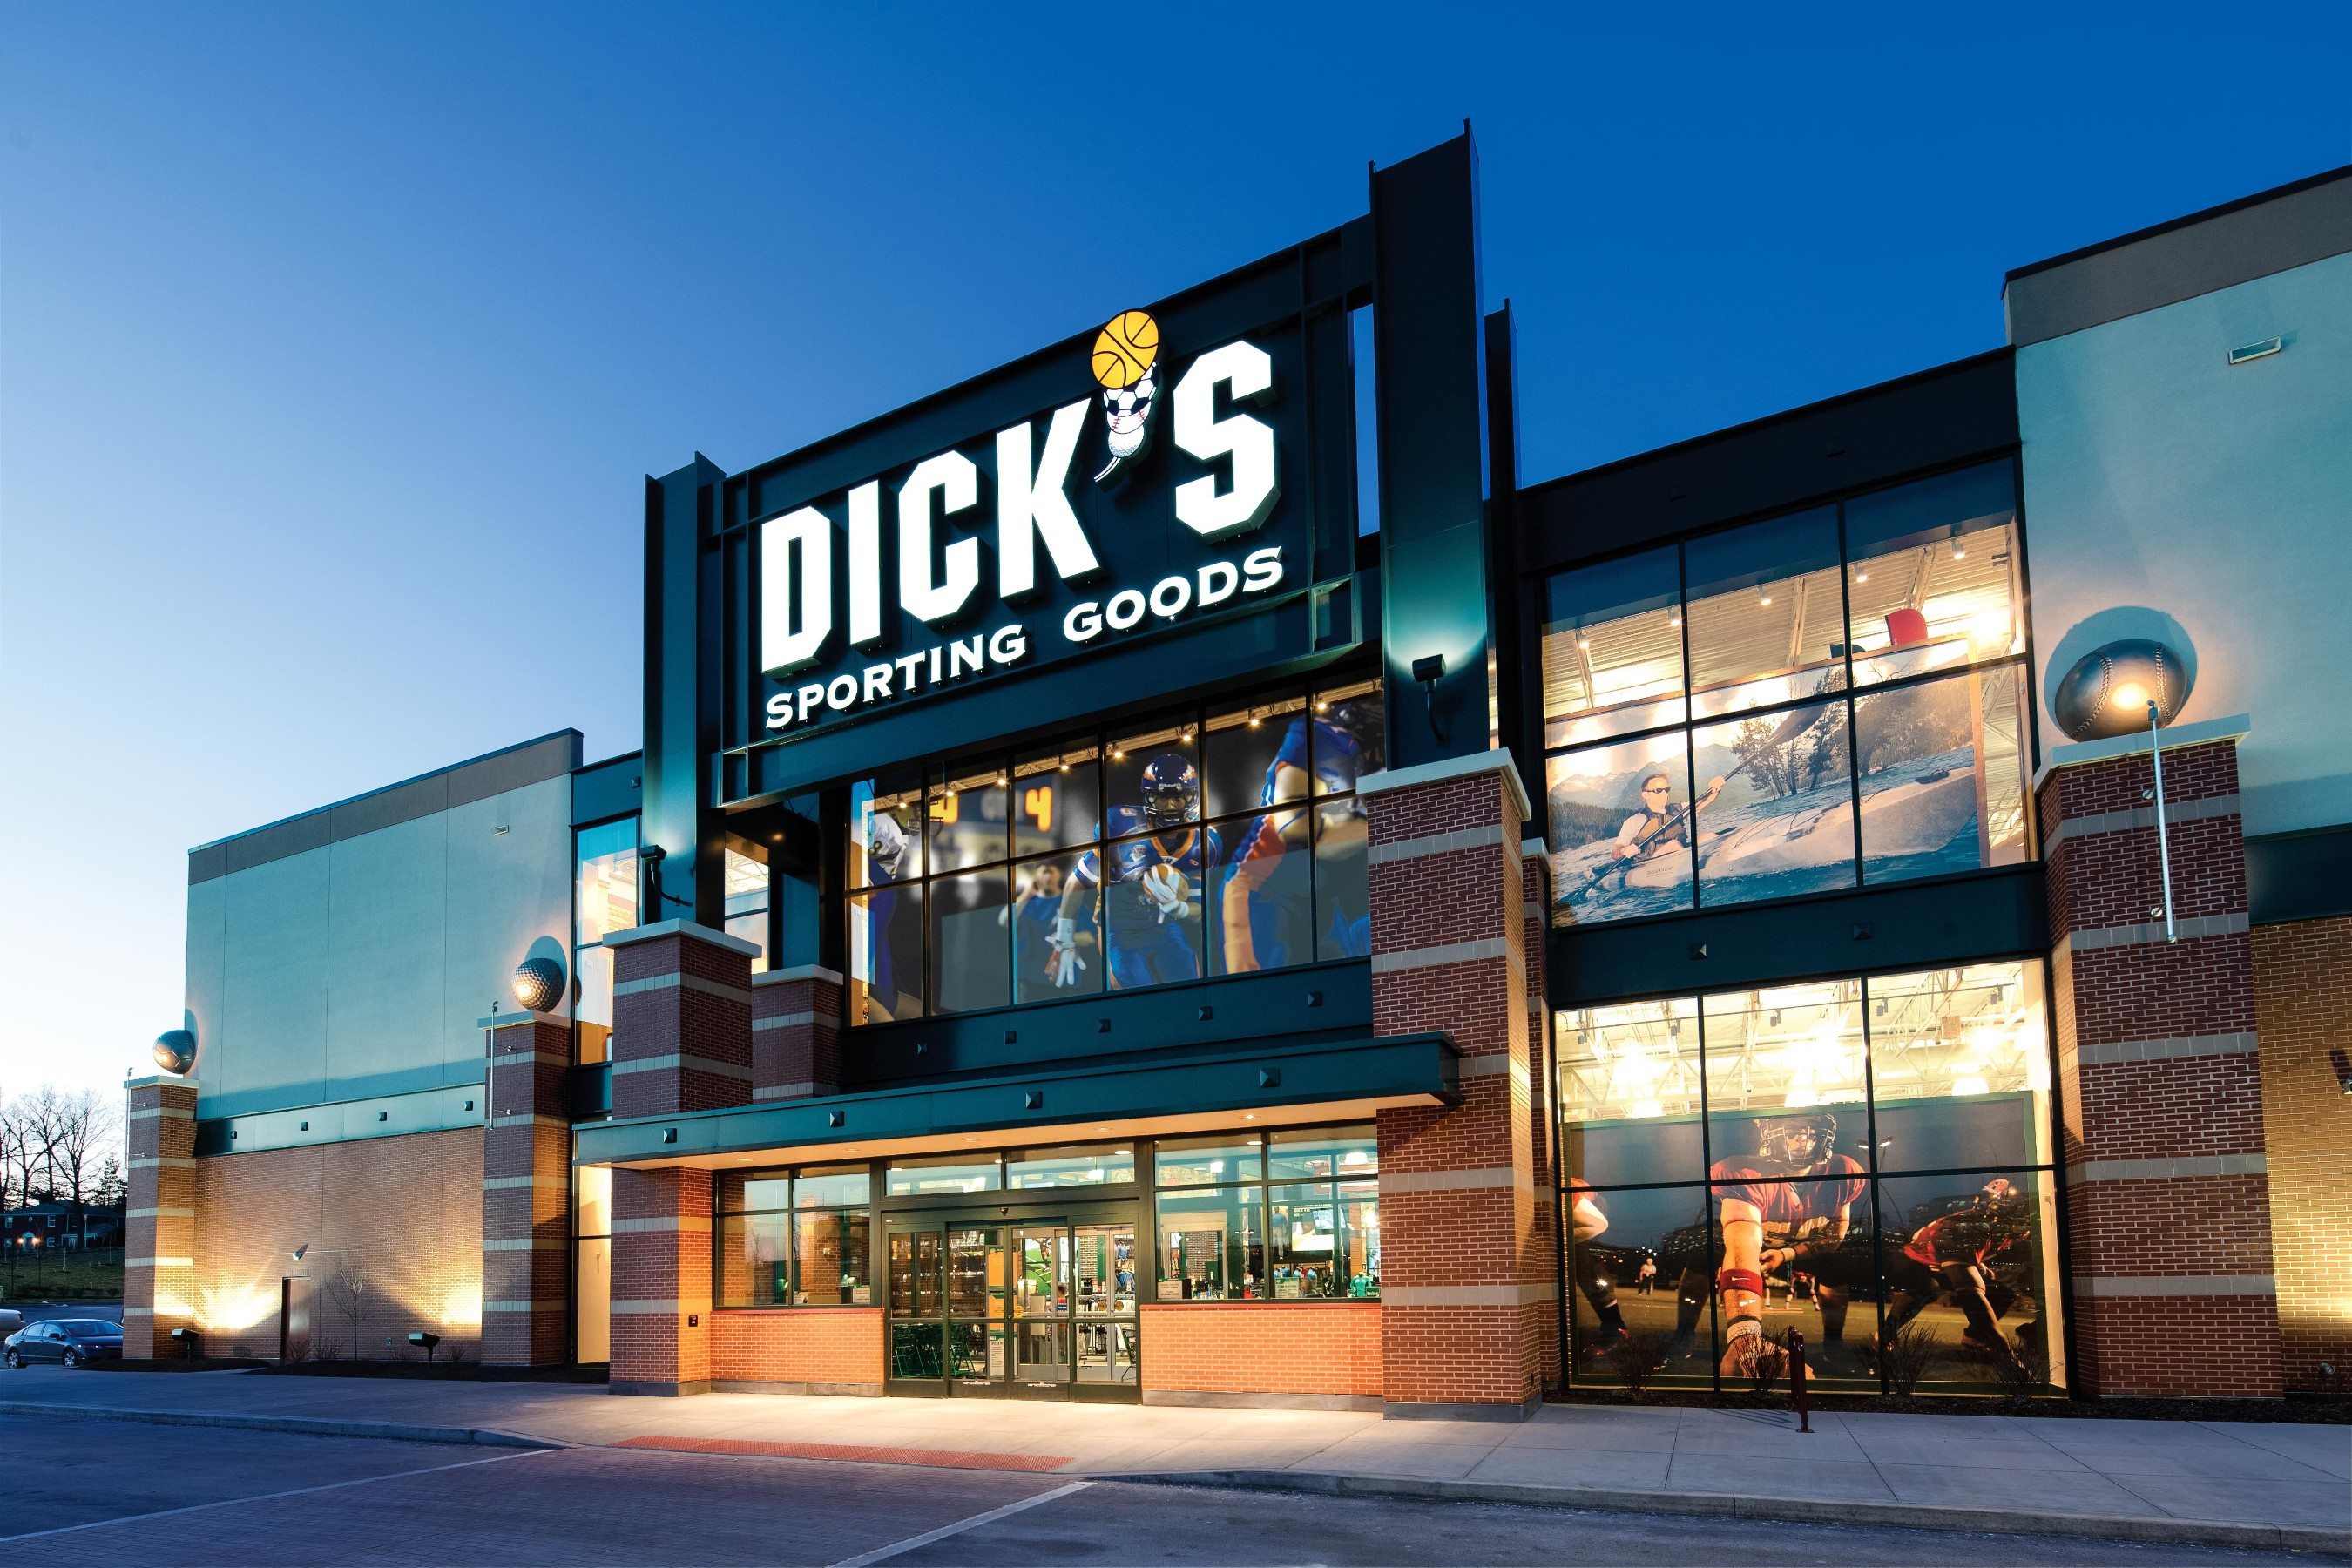 DICK'S Sporting Goods Announces Grand Opening of 11 Stores, the addition of Soccer Shops and its first-ever ScoreCard Appreciation Week in October